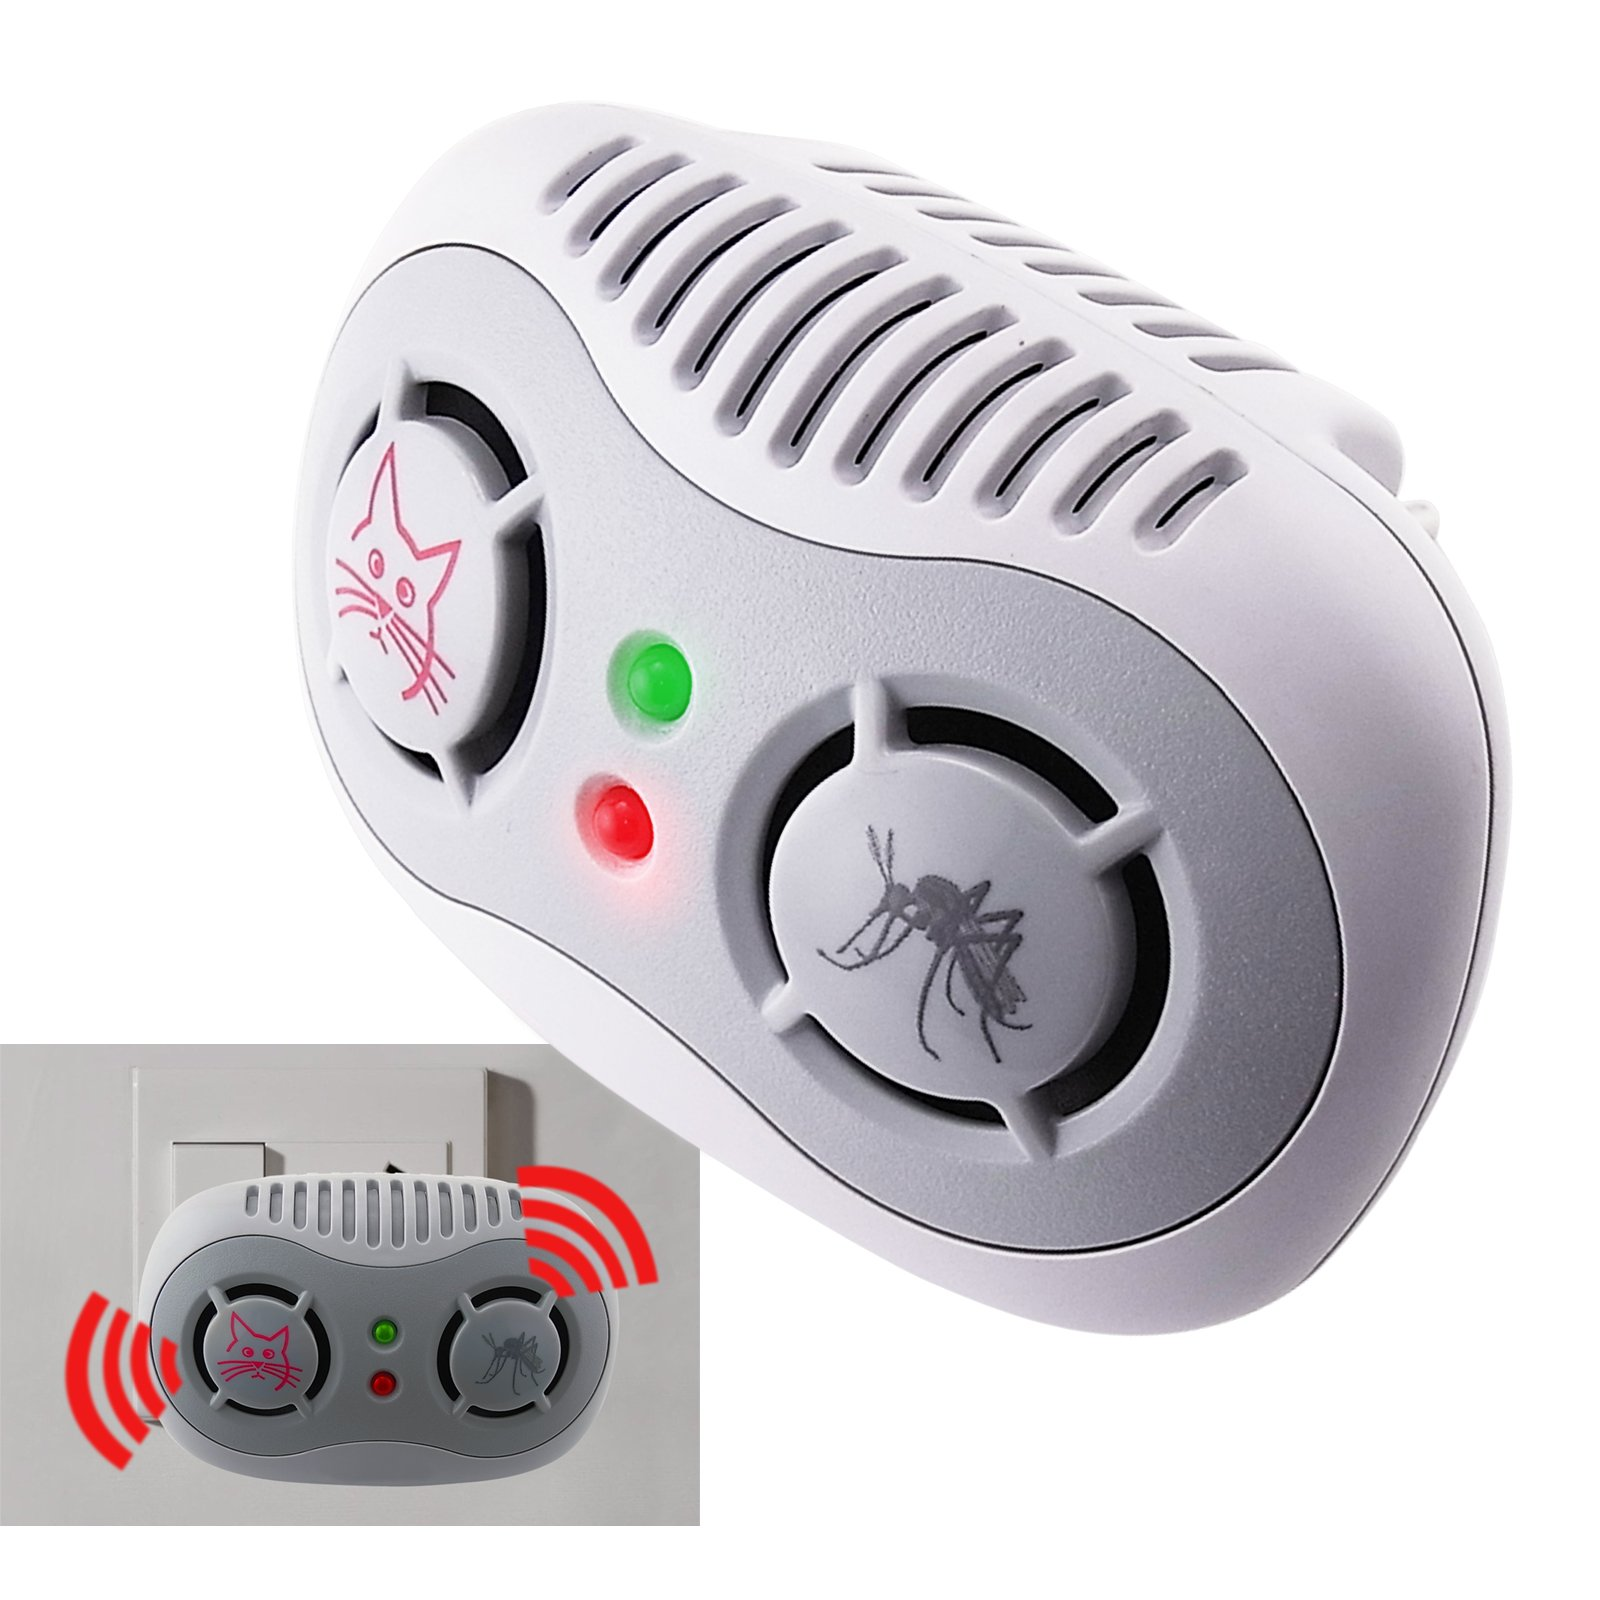 Non Toxic Repellent Ultrasonic Repeller 2 In 1 Anti Mouse Mosquito Repellents By Electronic Circuit This Is A New Generation Chaser And Combined Unit It Works Continuously Transmitting Powerful Range Of